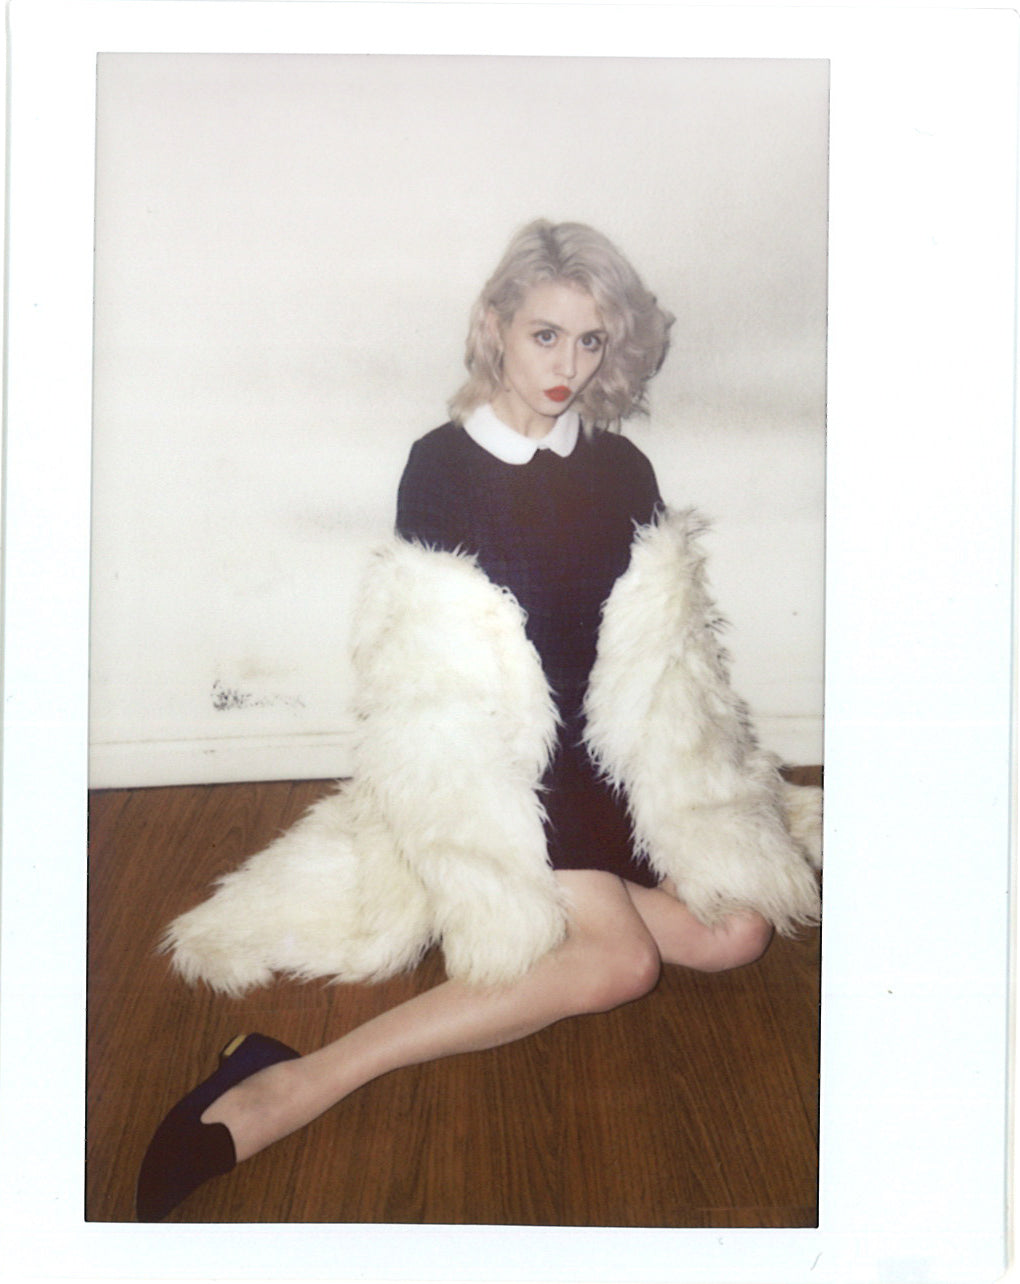 Allison Antm all dolled up for the holidays with allison harvard – valfré